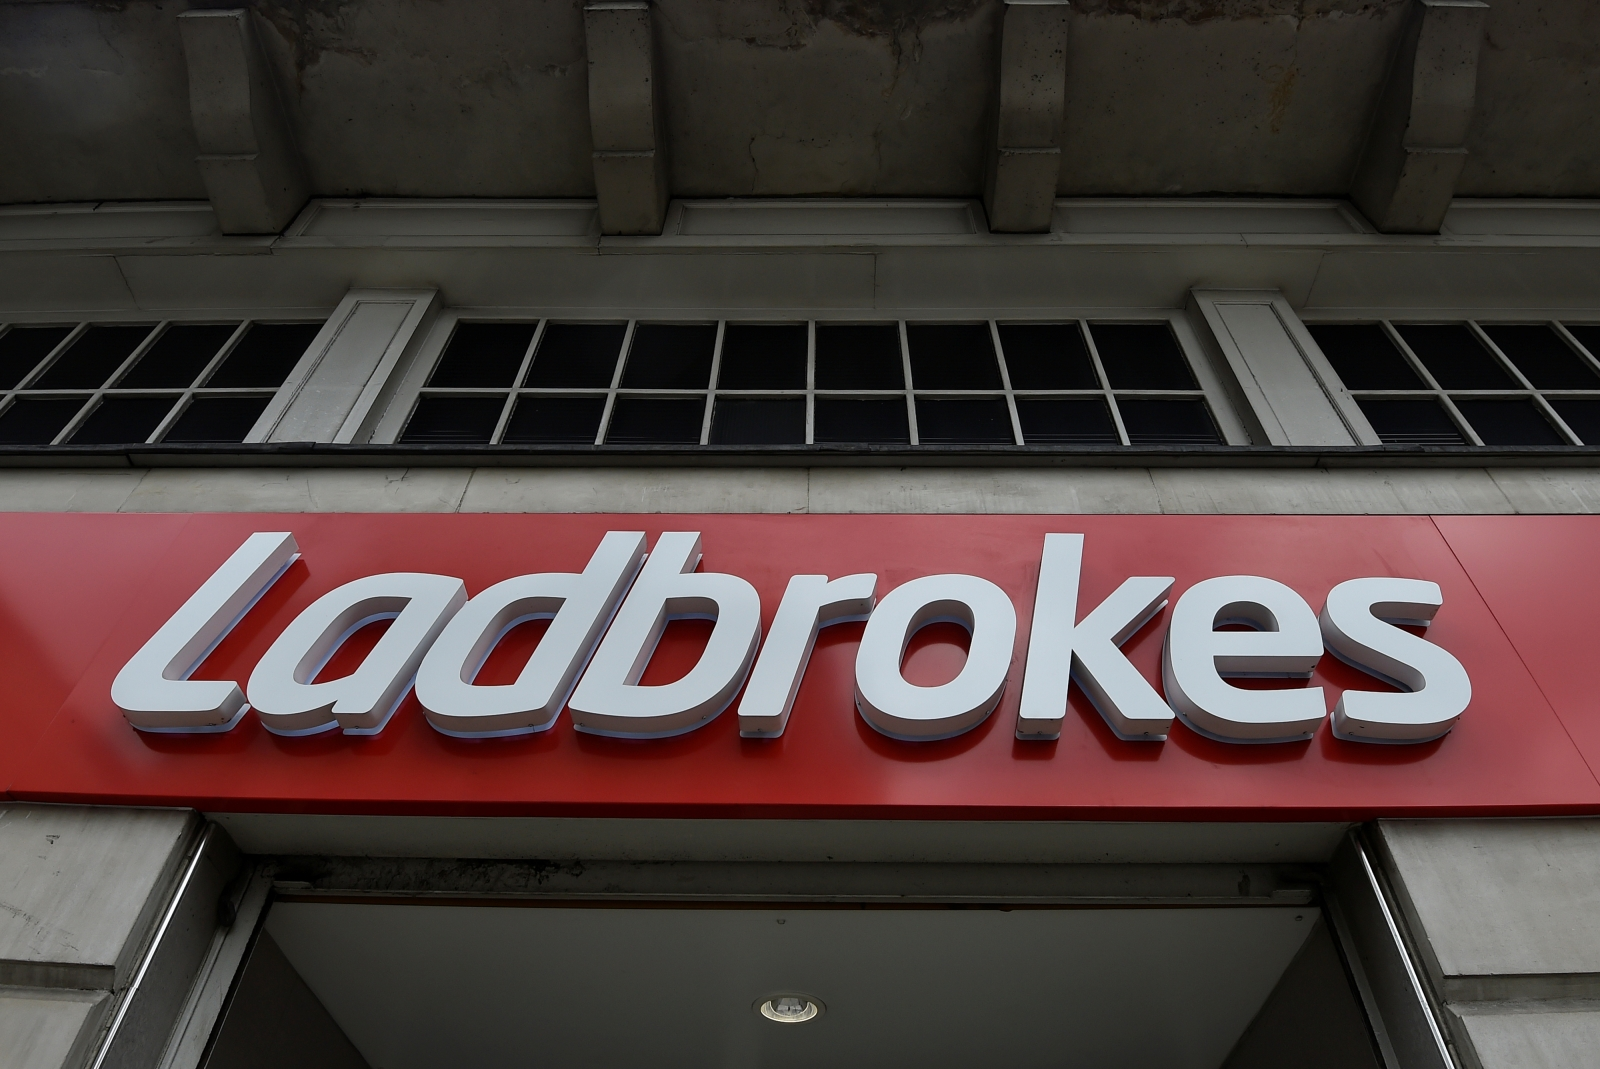 Ladbrokes Coral Group PLC (LAD) Stock Rating Reaffirmed by Peel Hunt